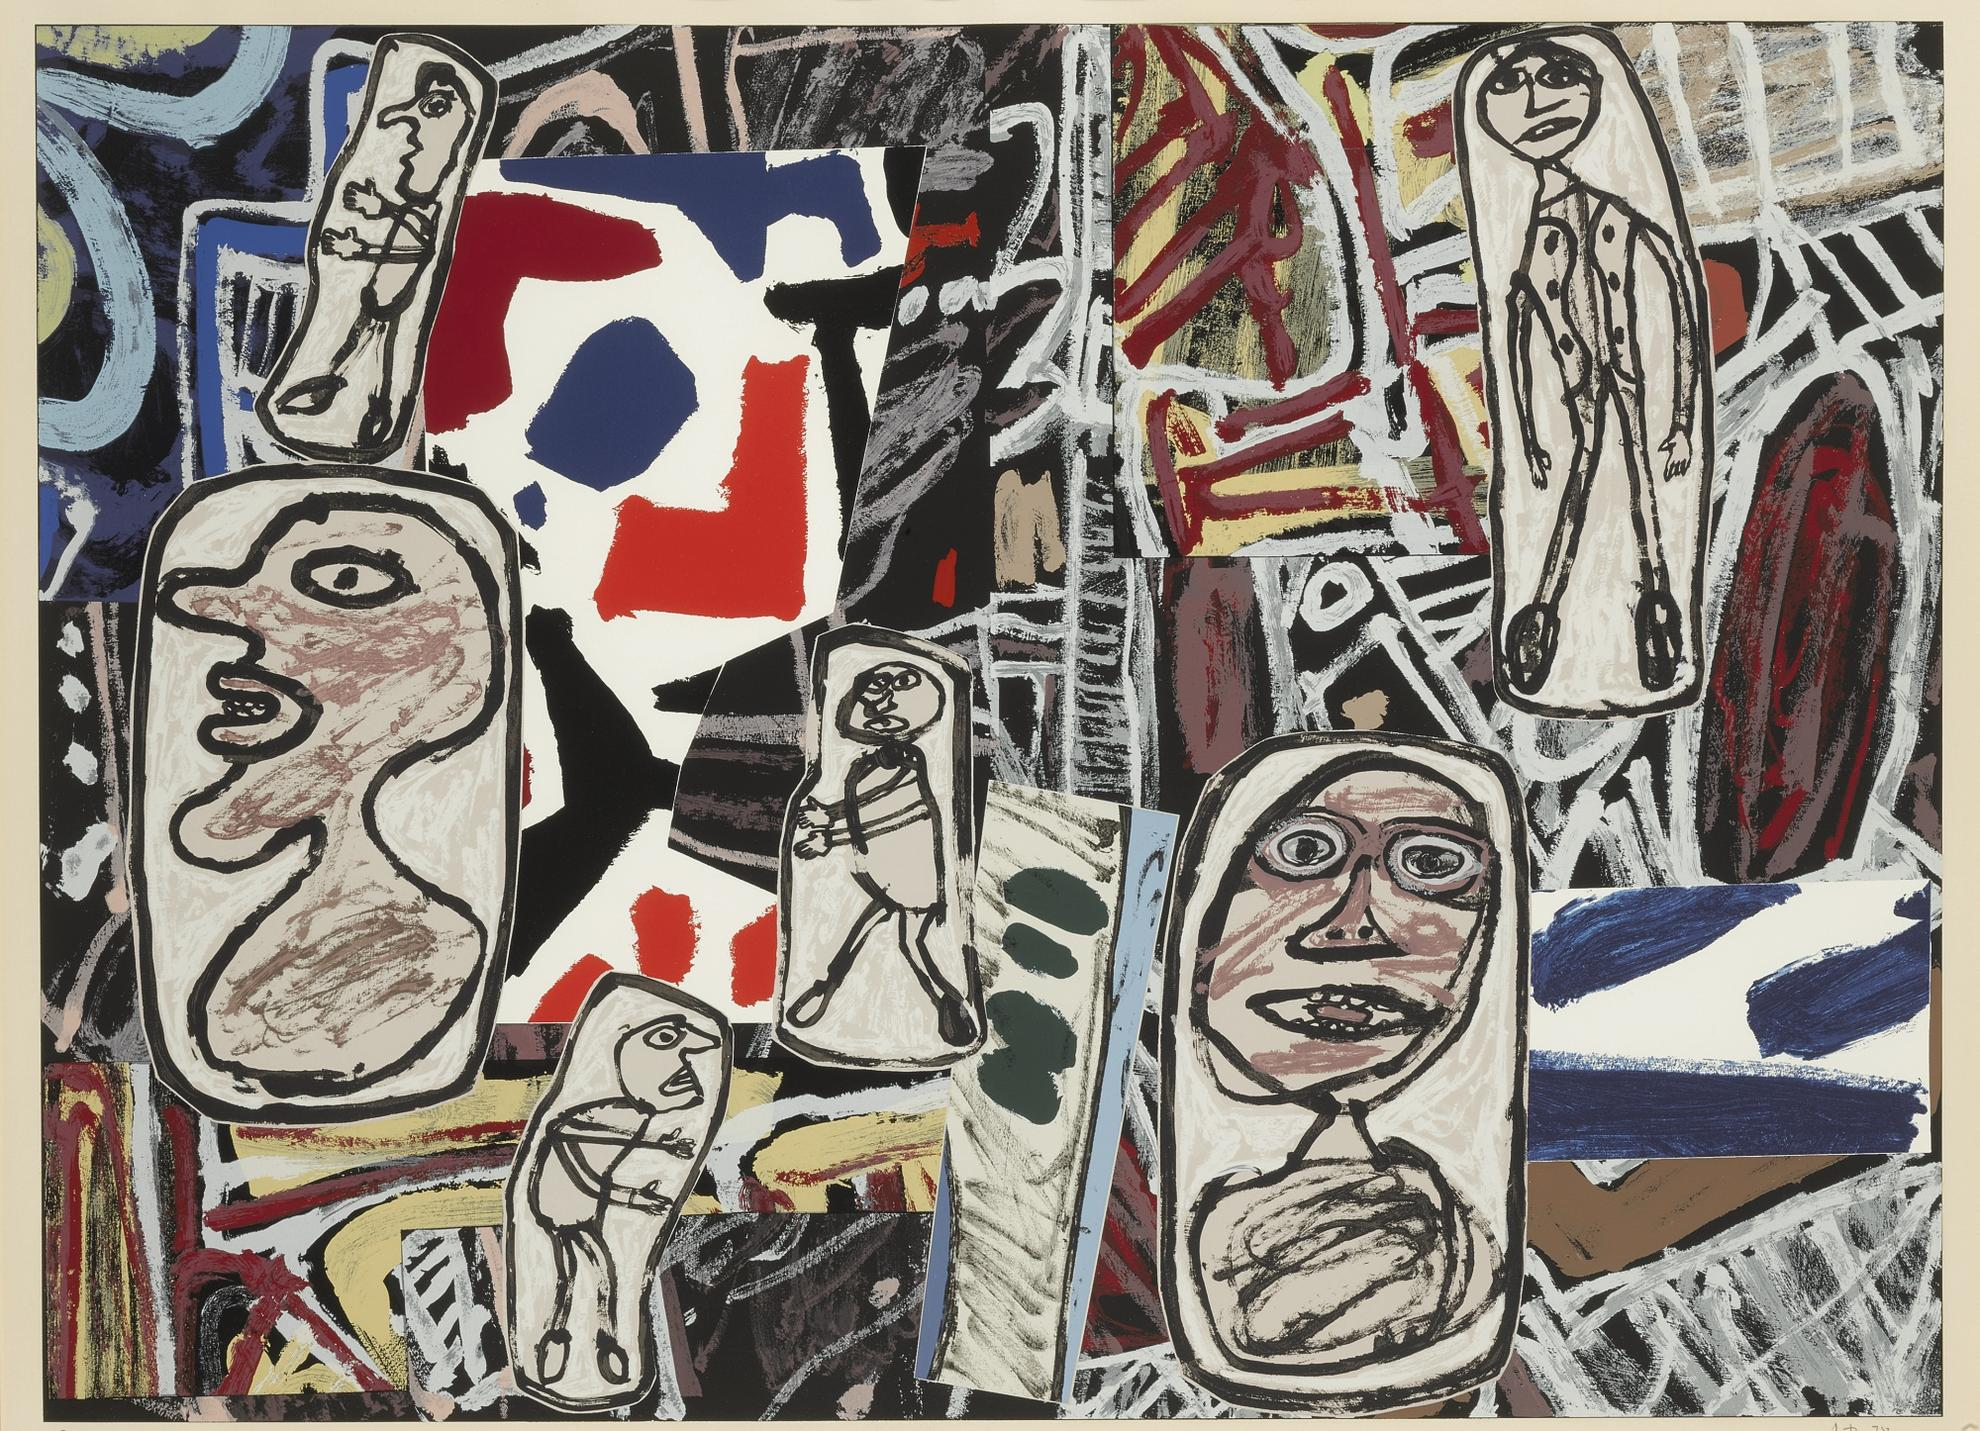 Jean Dubuffet-Faits Memorables I, II & III (Webel 1259-61)-1978